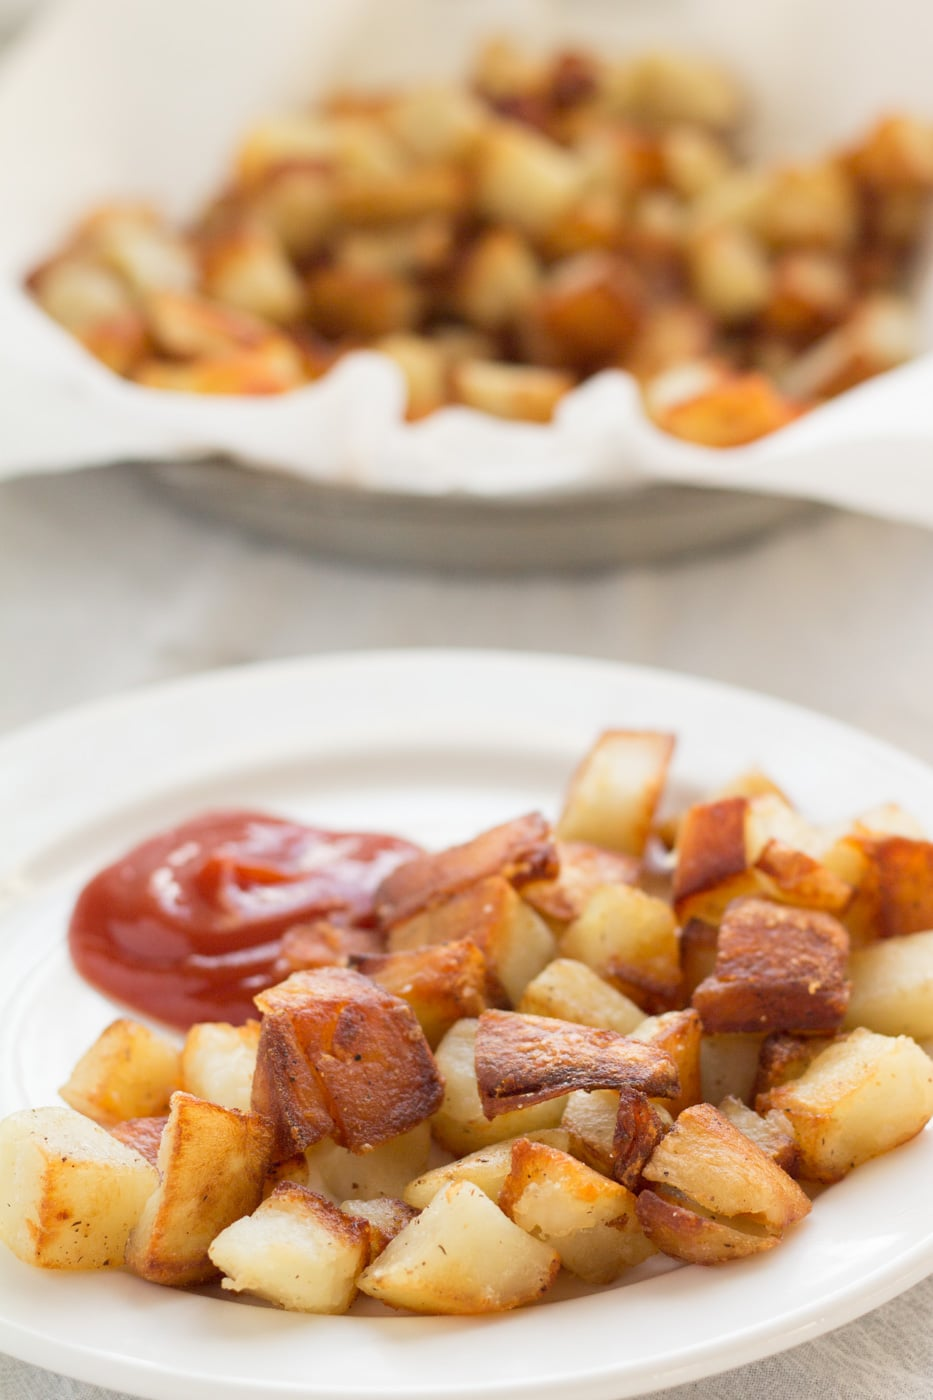 Home fries with ketchup on a white plate with blurred fried potatoes in a pie tin in the background